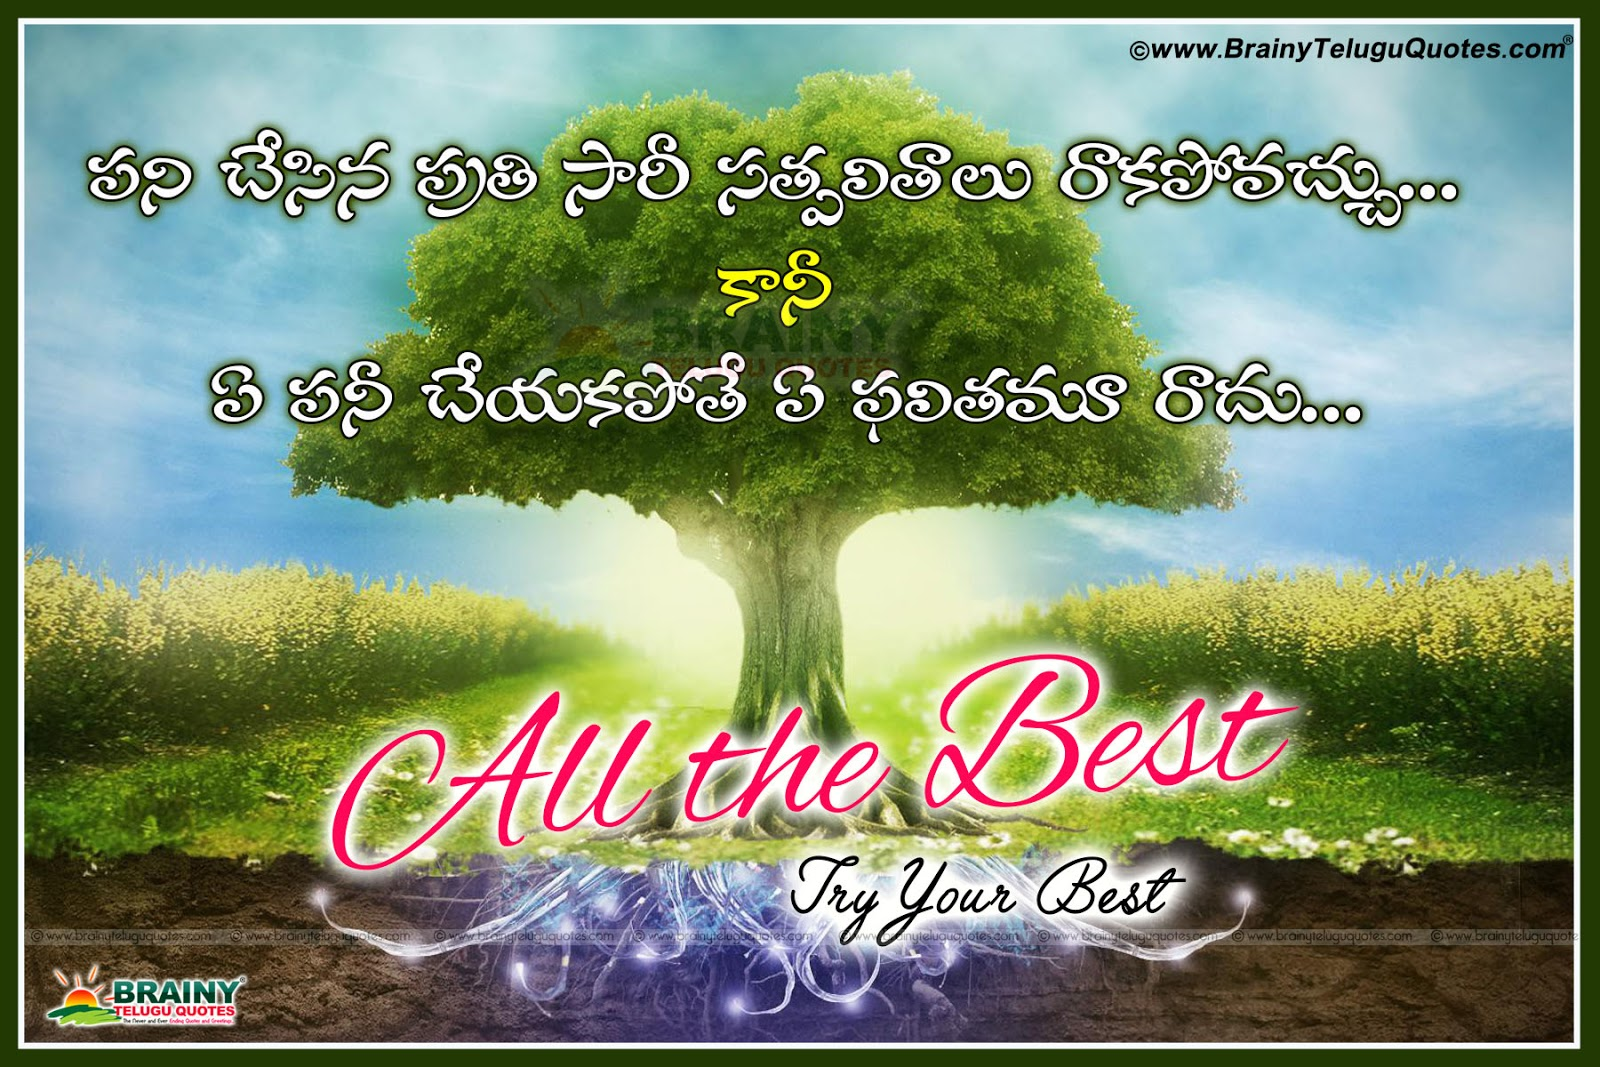 Telugu Quotations Sms Messages And Greetings Wishes For All The Best